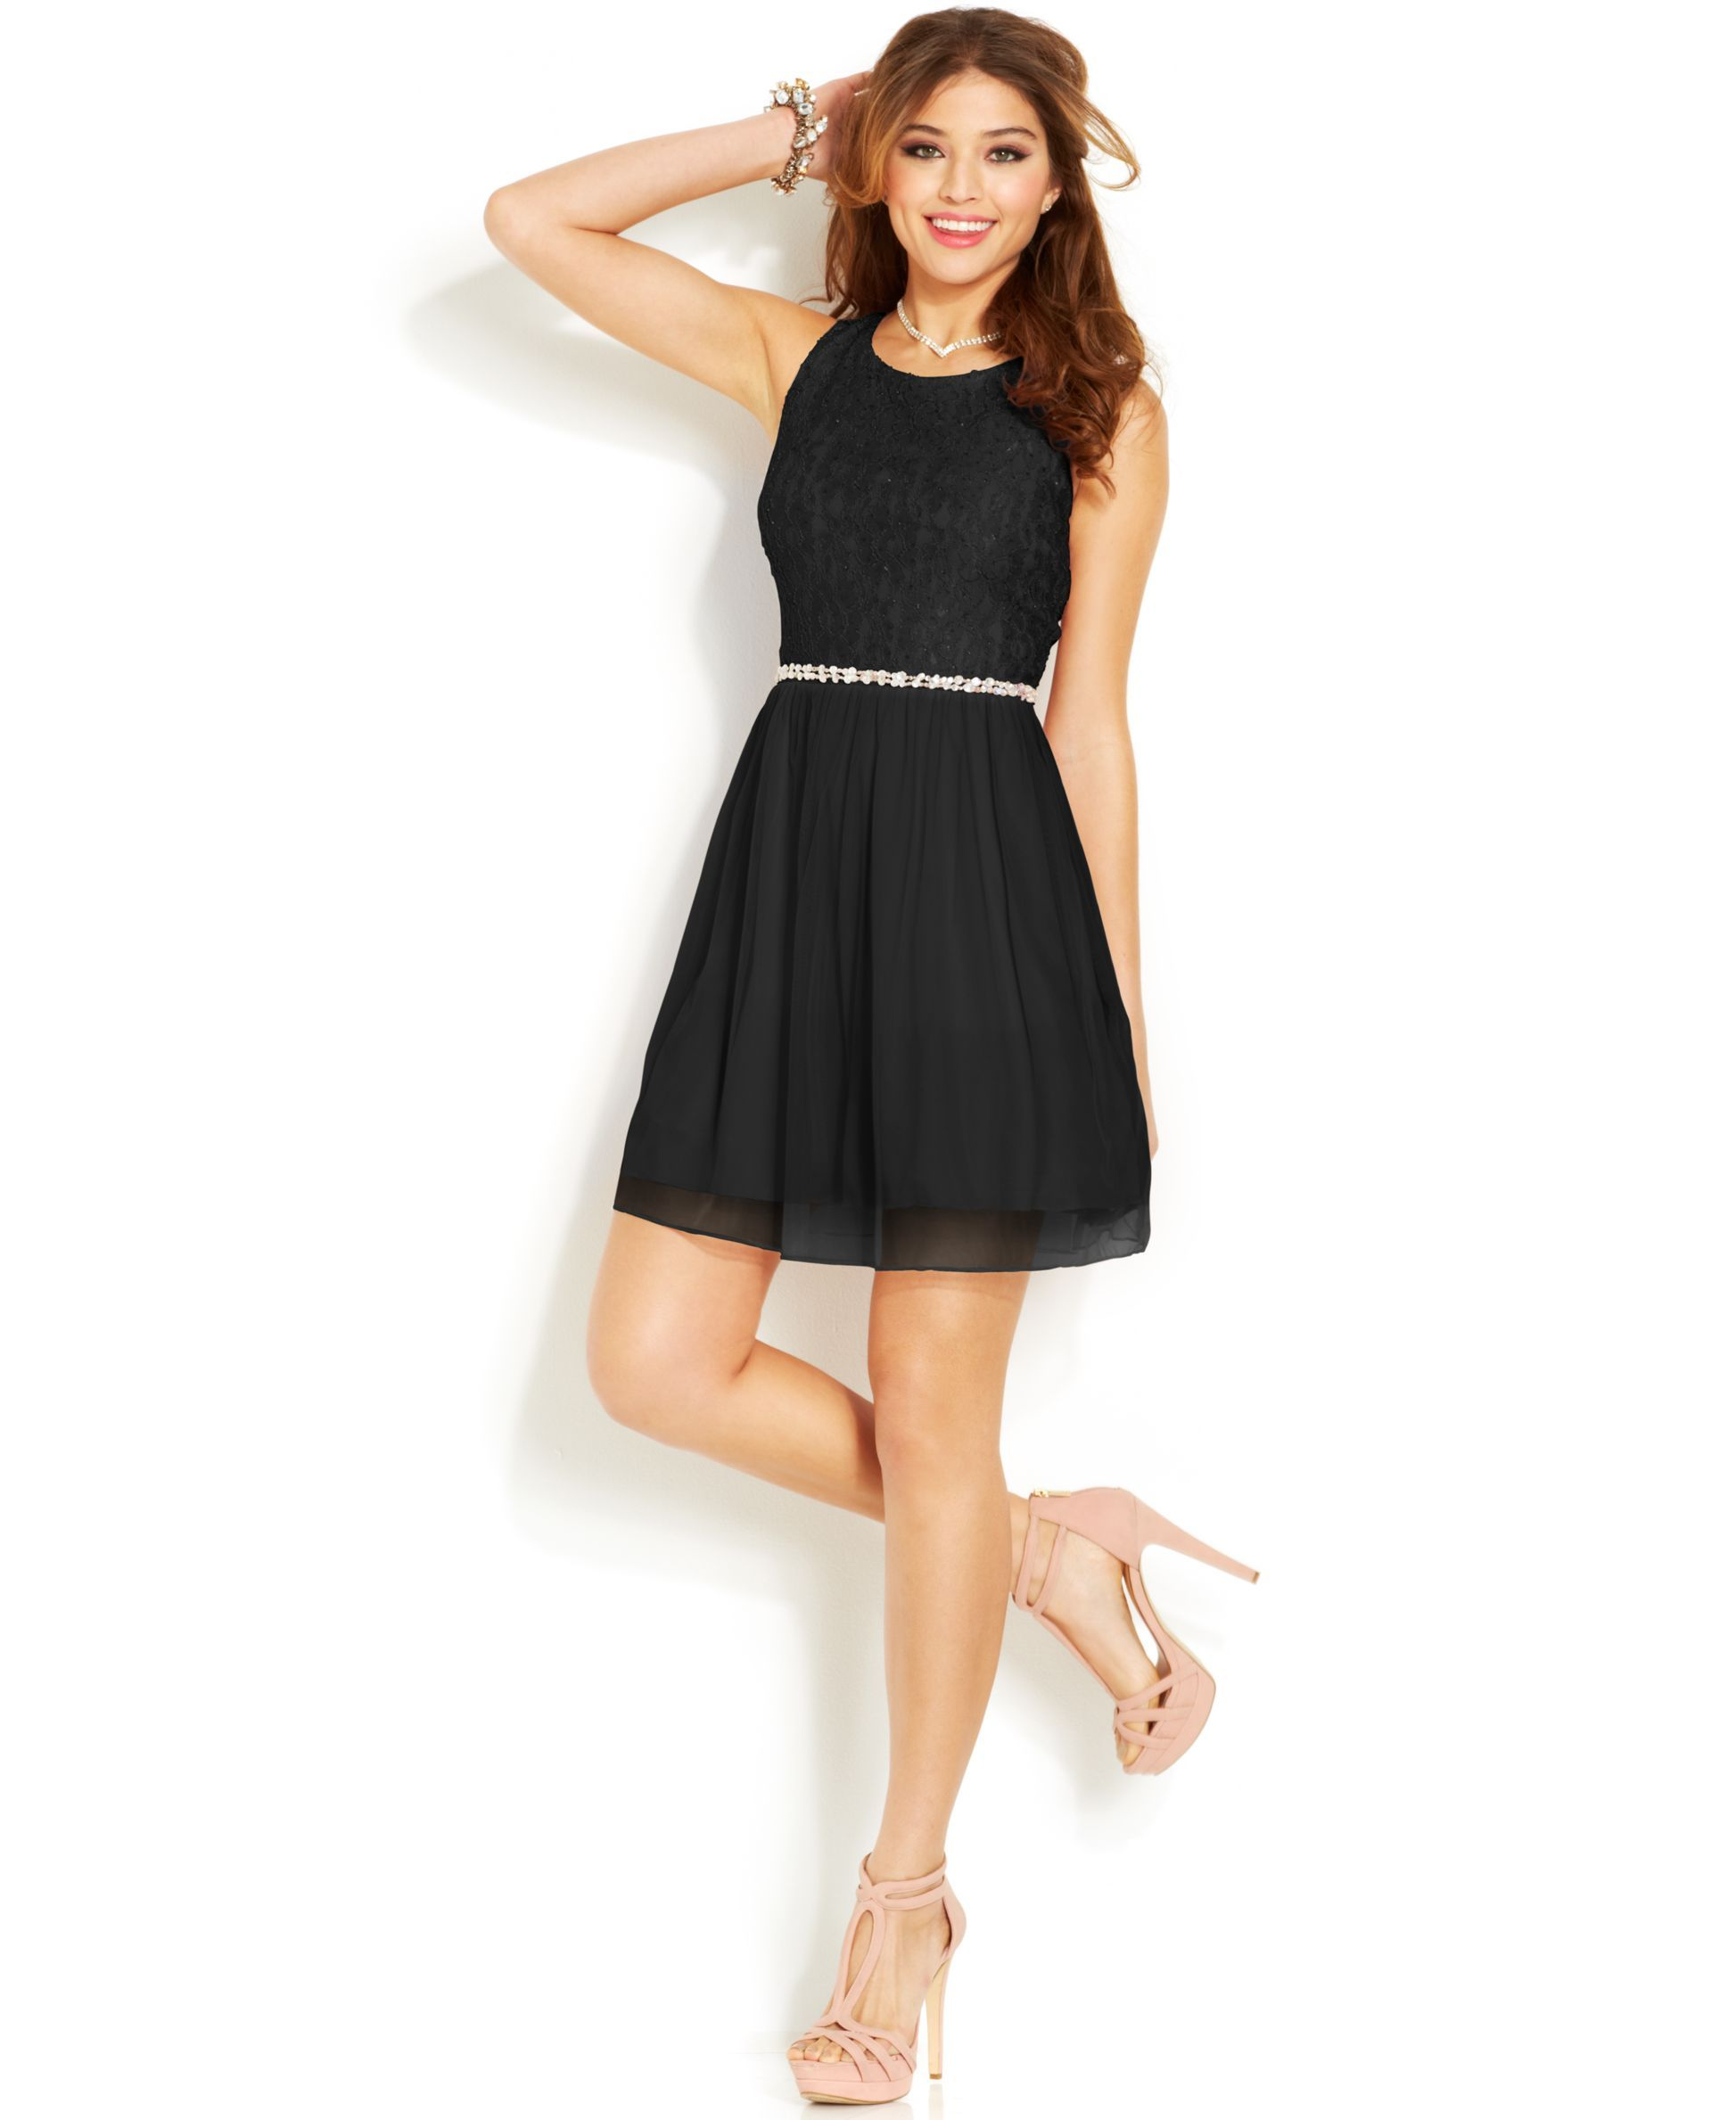 Macy's Graduation Dresses for Teens